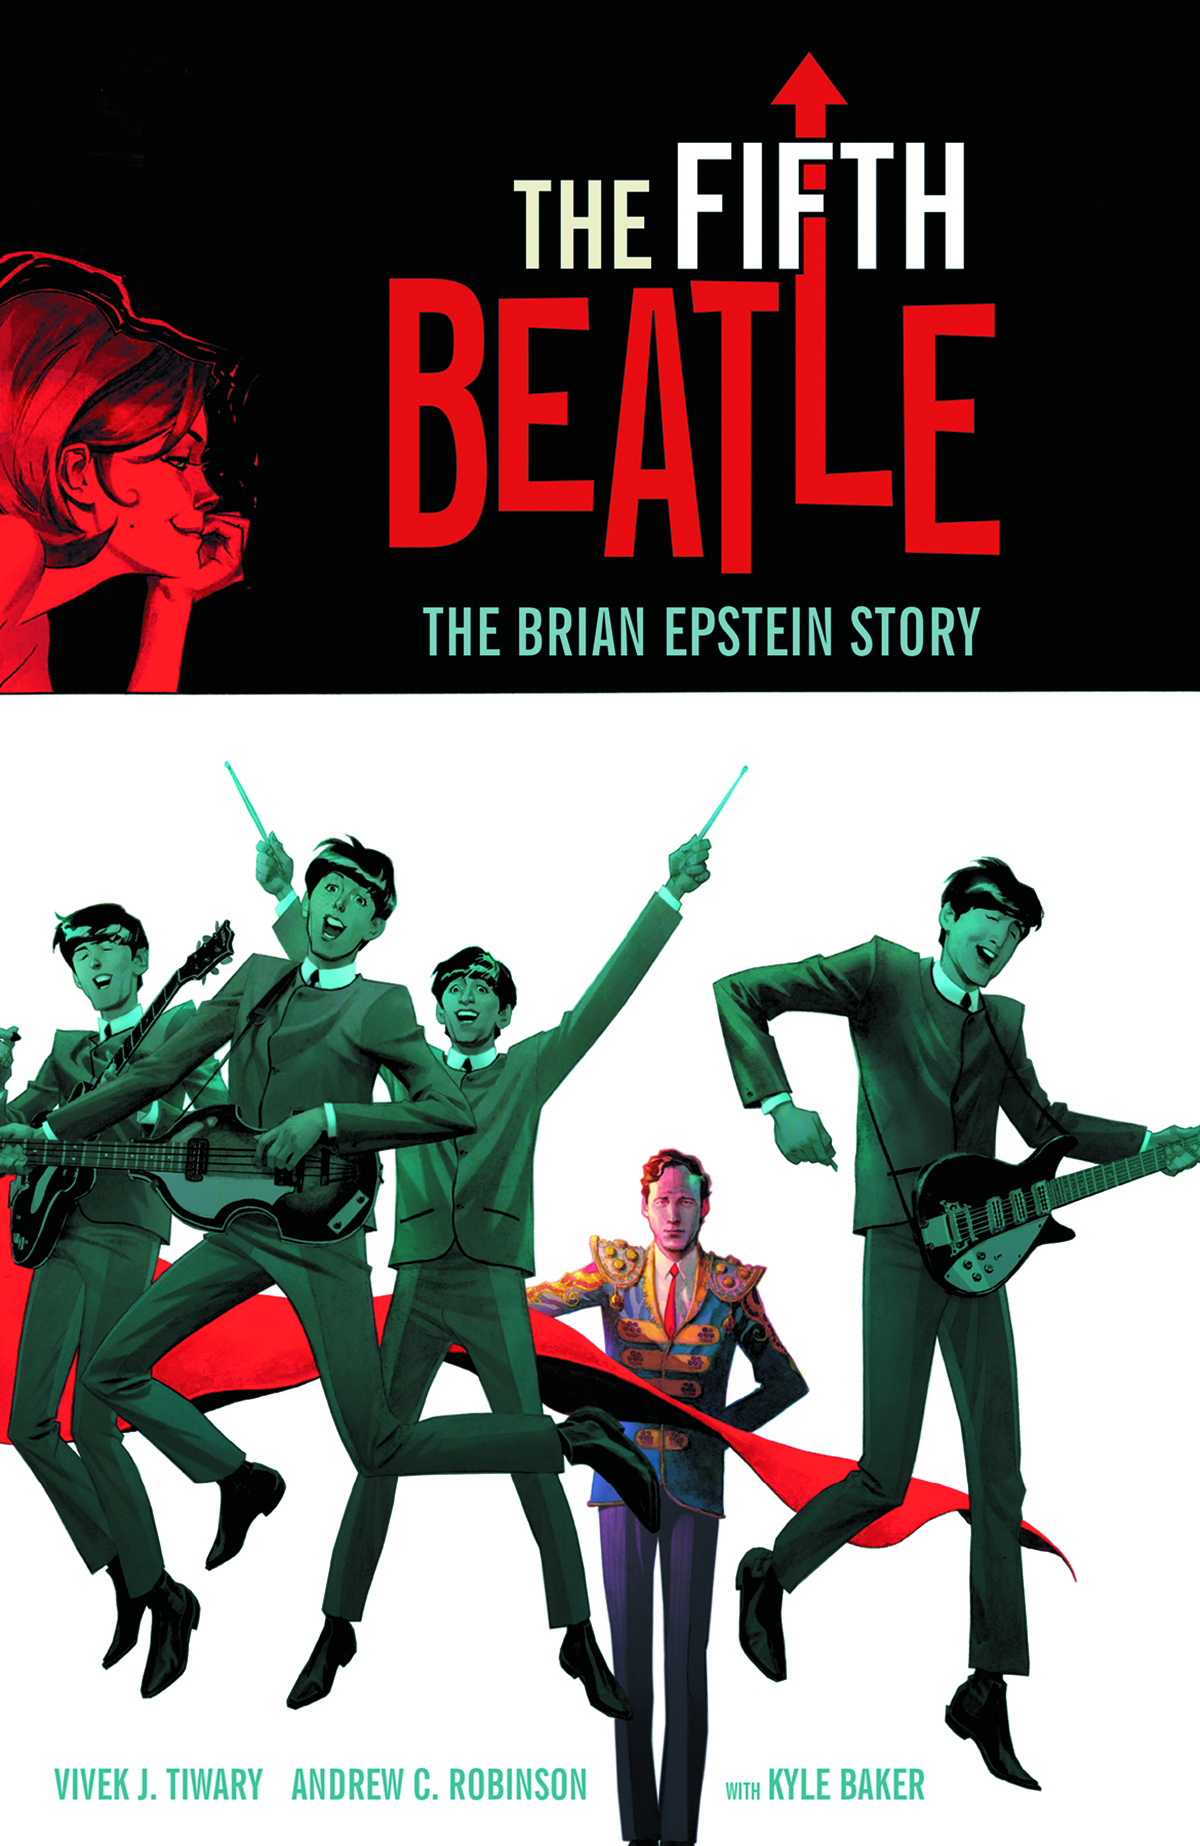 FIFTH BEATLE THE BRIAN EPSTEIN STORY LTD ED HC